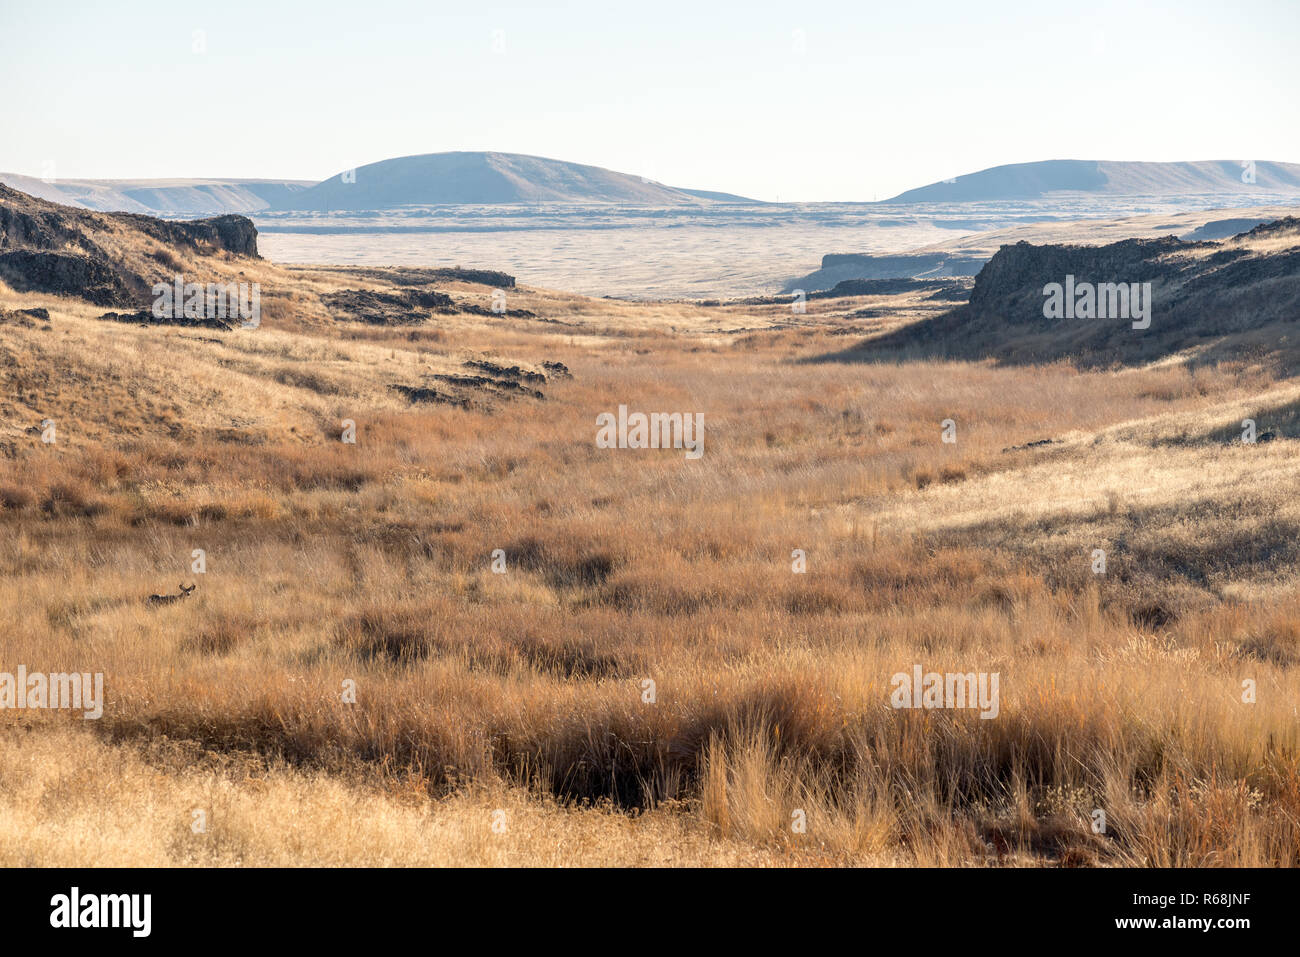 The scablands of Eastern Washington. Stock Photo